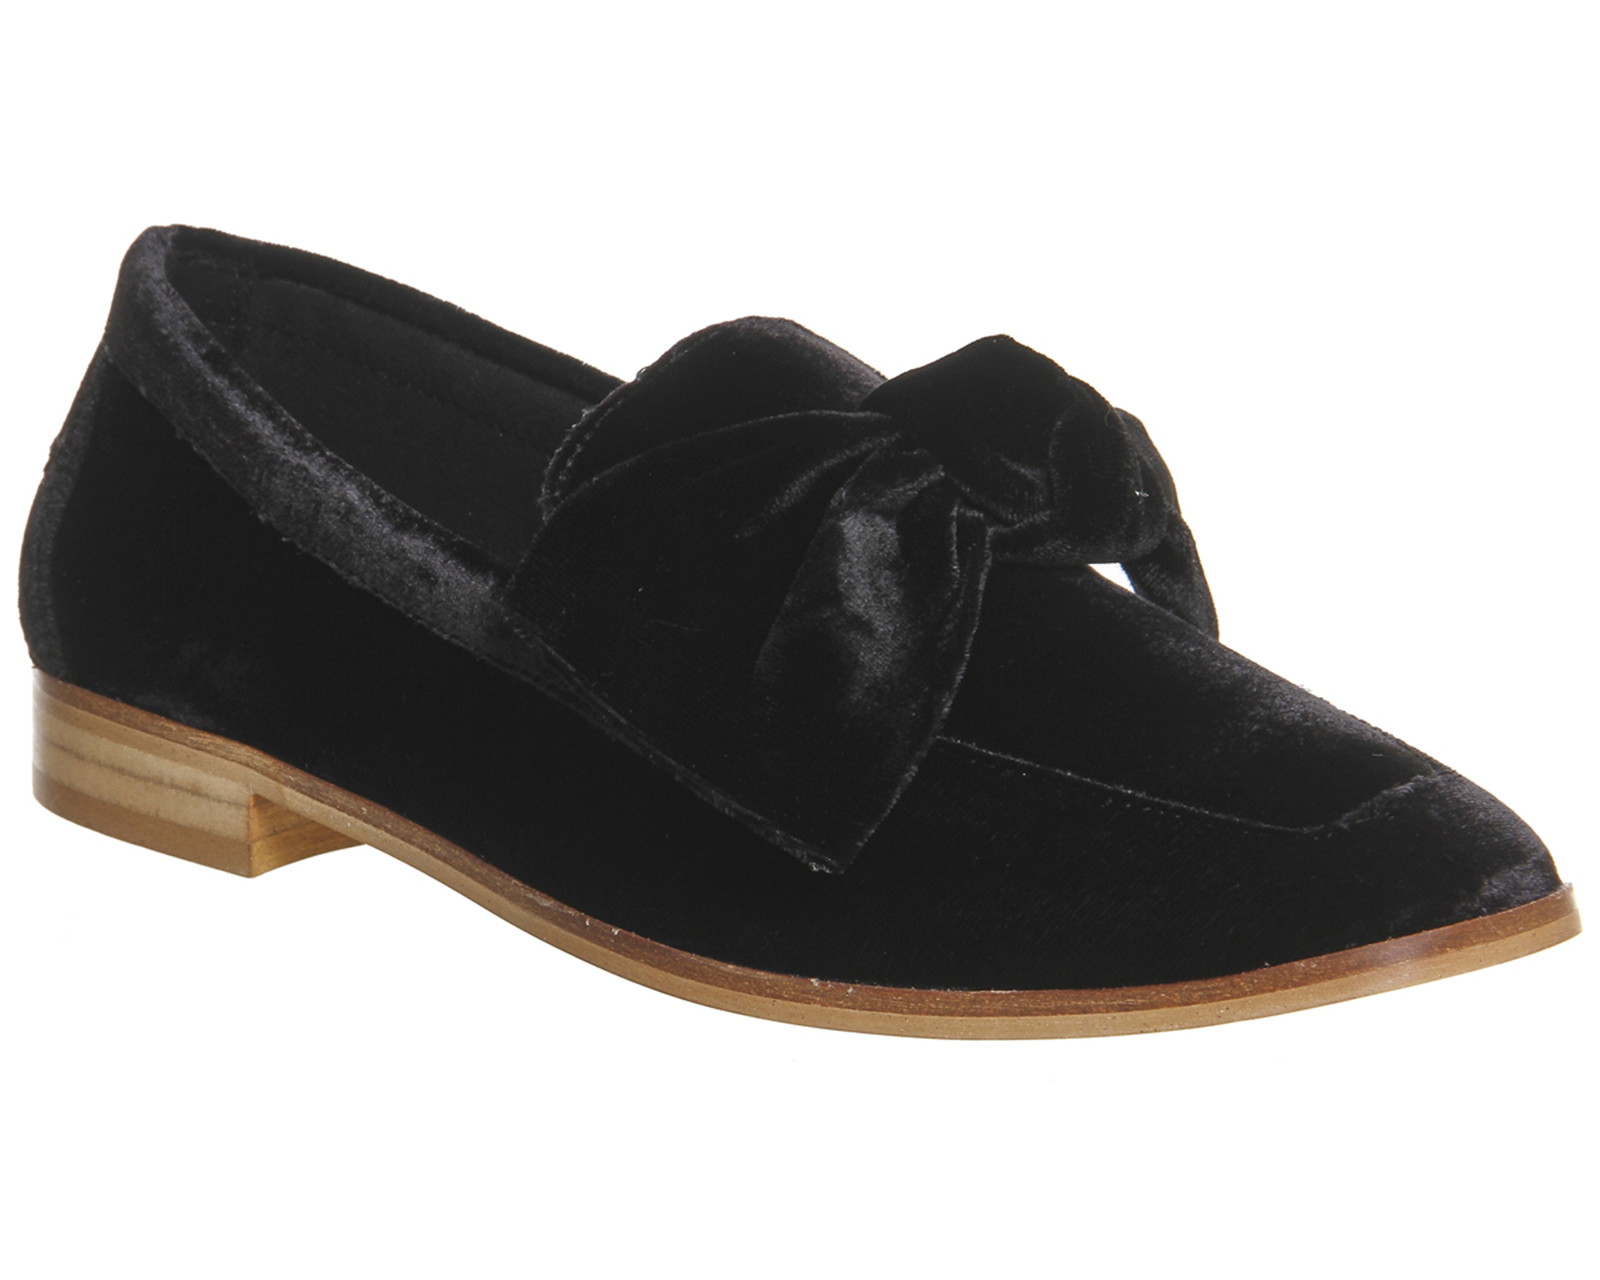 Office Womens Shoes Uk